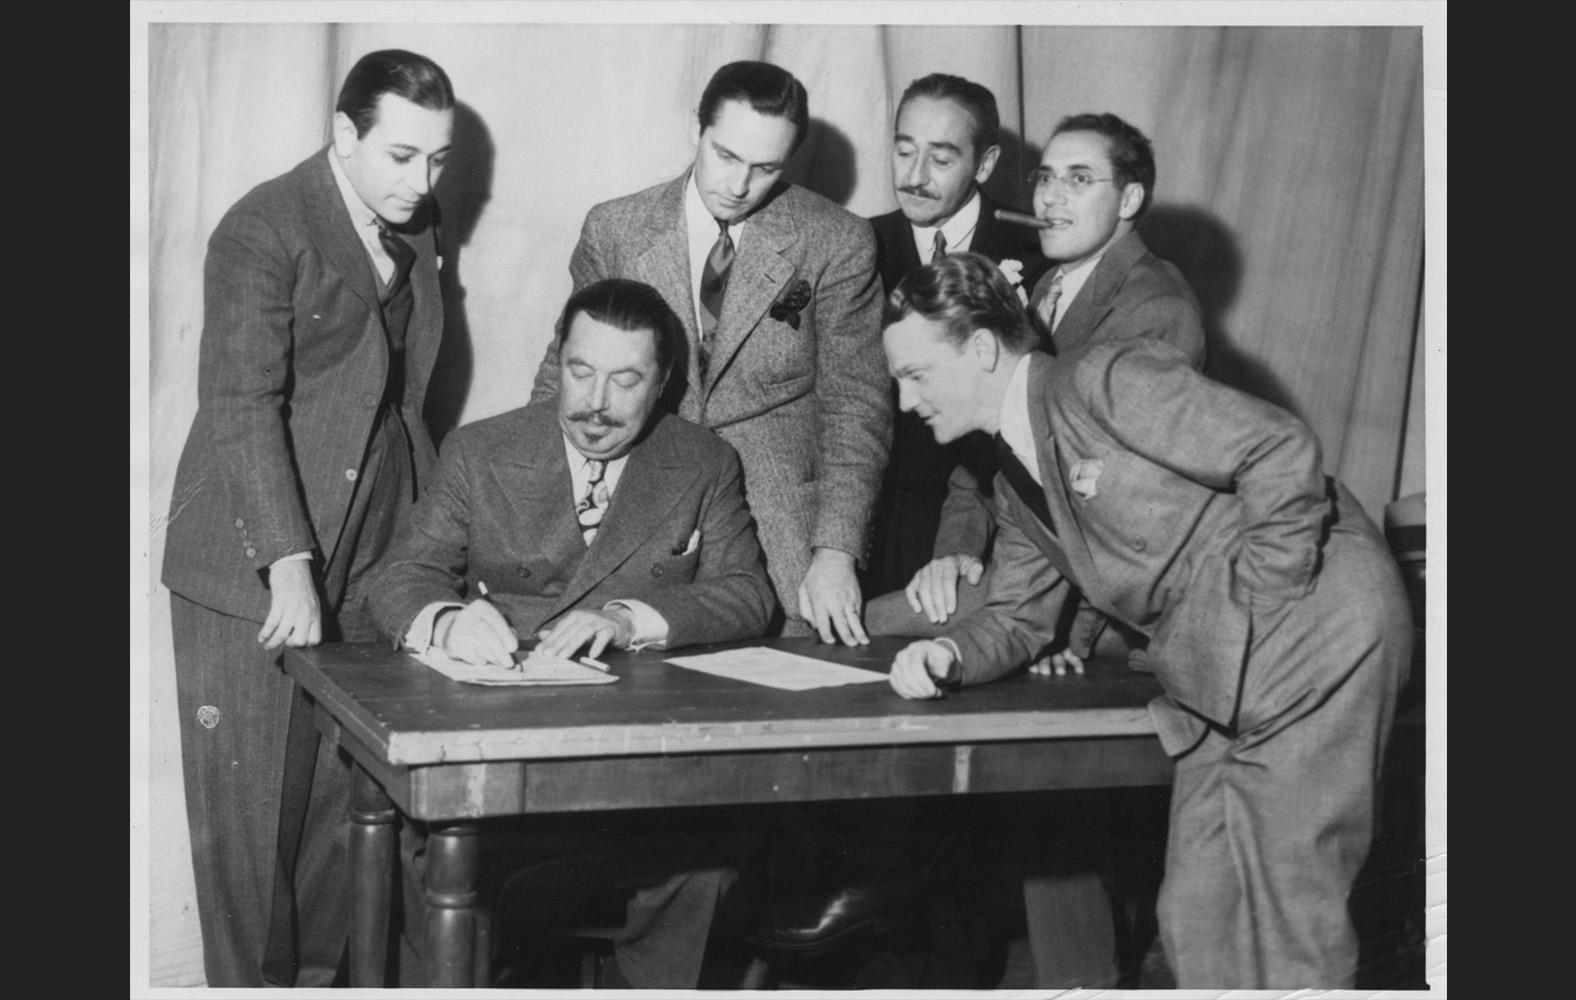 Stars join SAG in October. George Raft, Warner Oland, Fredric March, Adolphe Menjou, Groucho Marx, James Cagney.